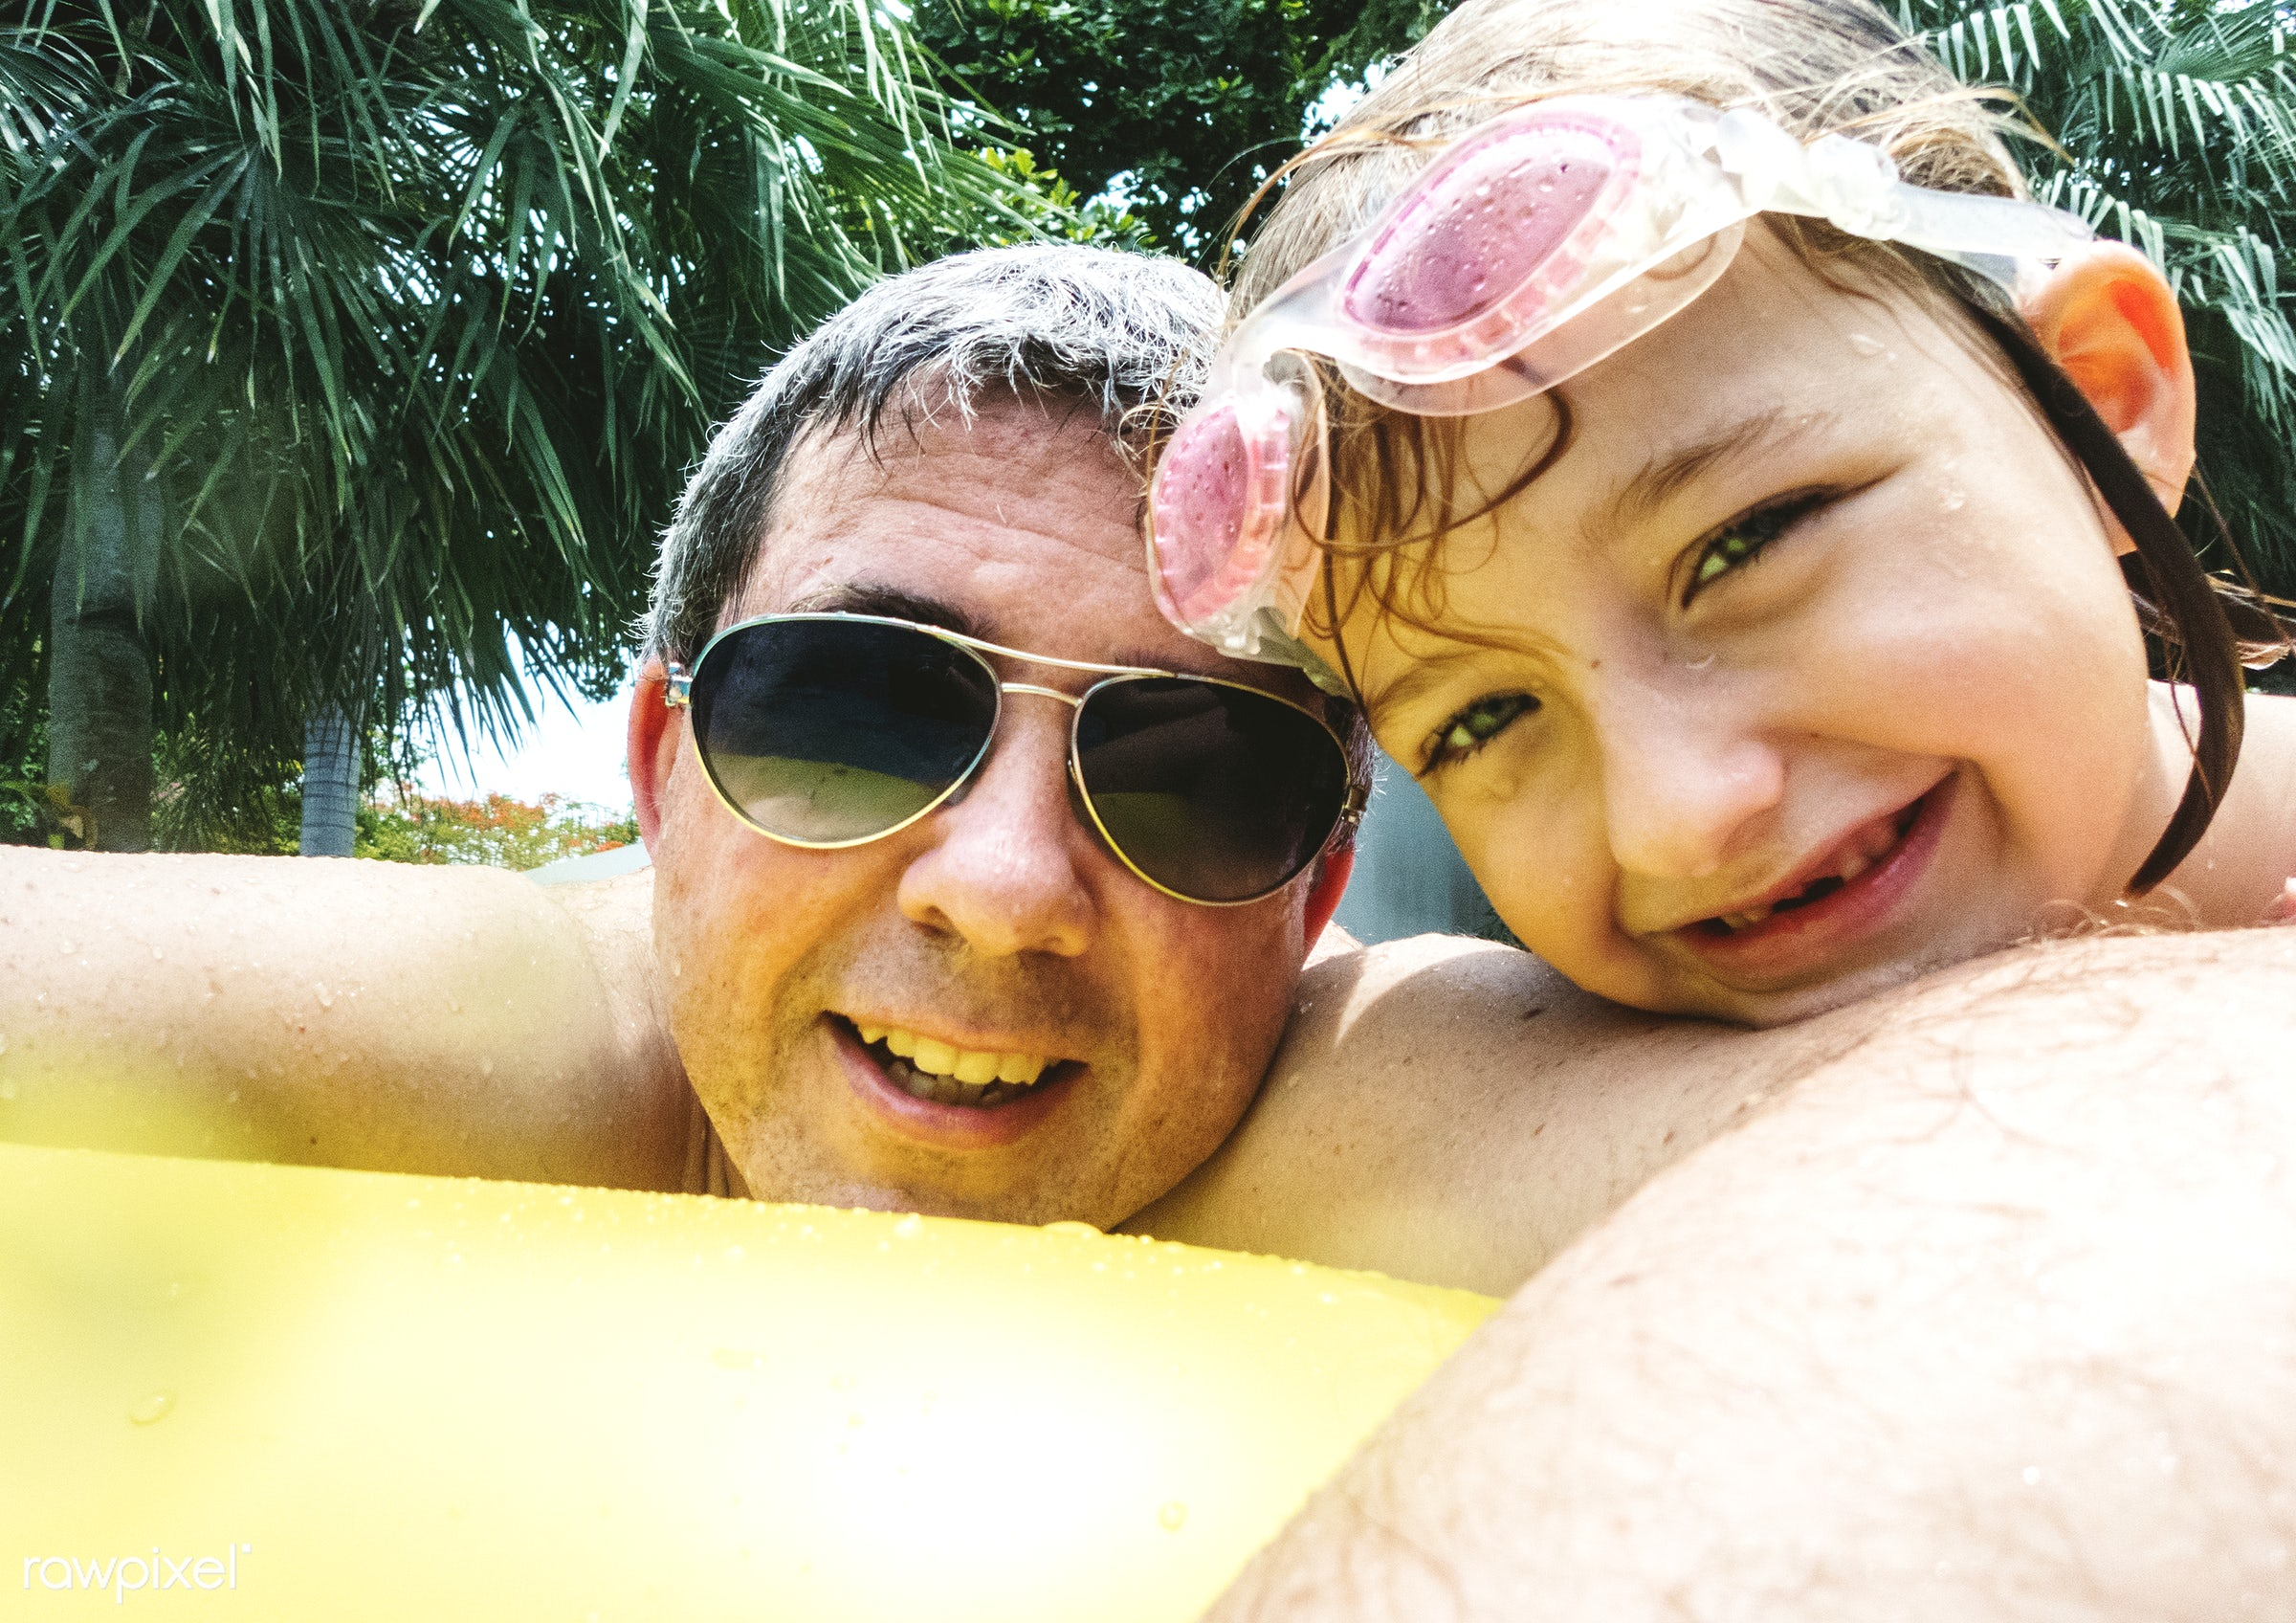 tube, relax, daughter, swimming pool, together, caucasian, father, pool, family, cheerful, smiling, closeup, dad, enjoying,...